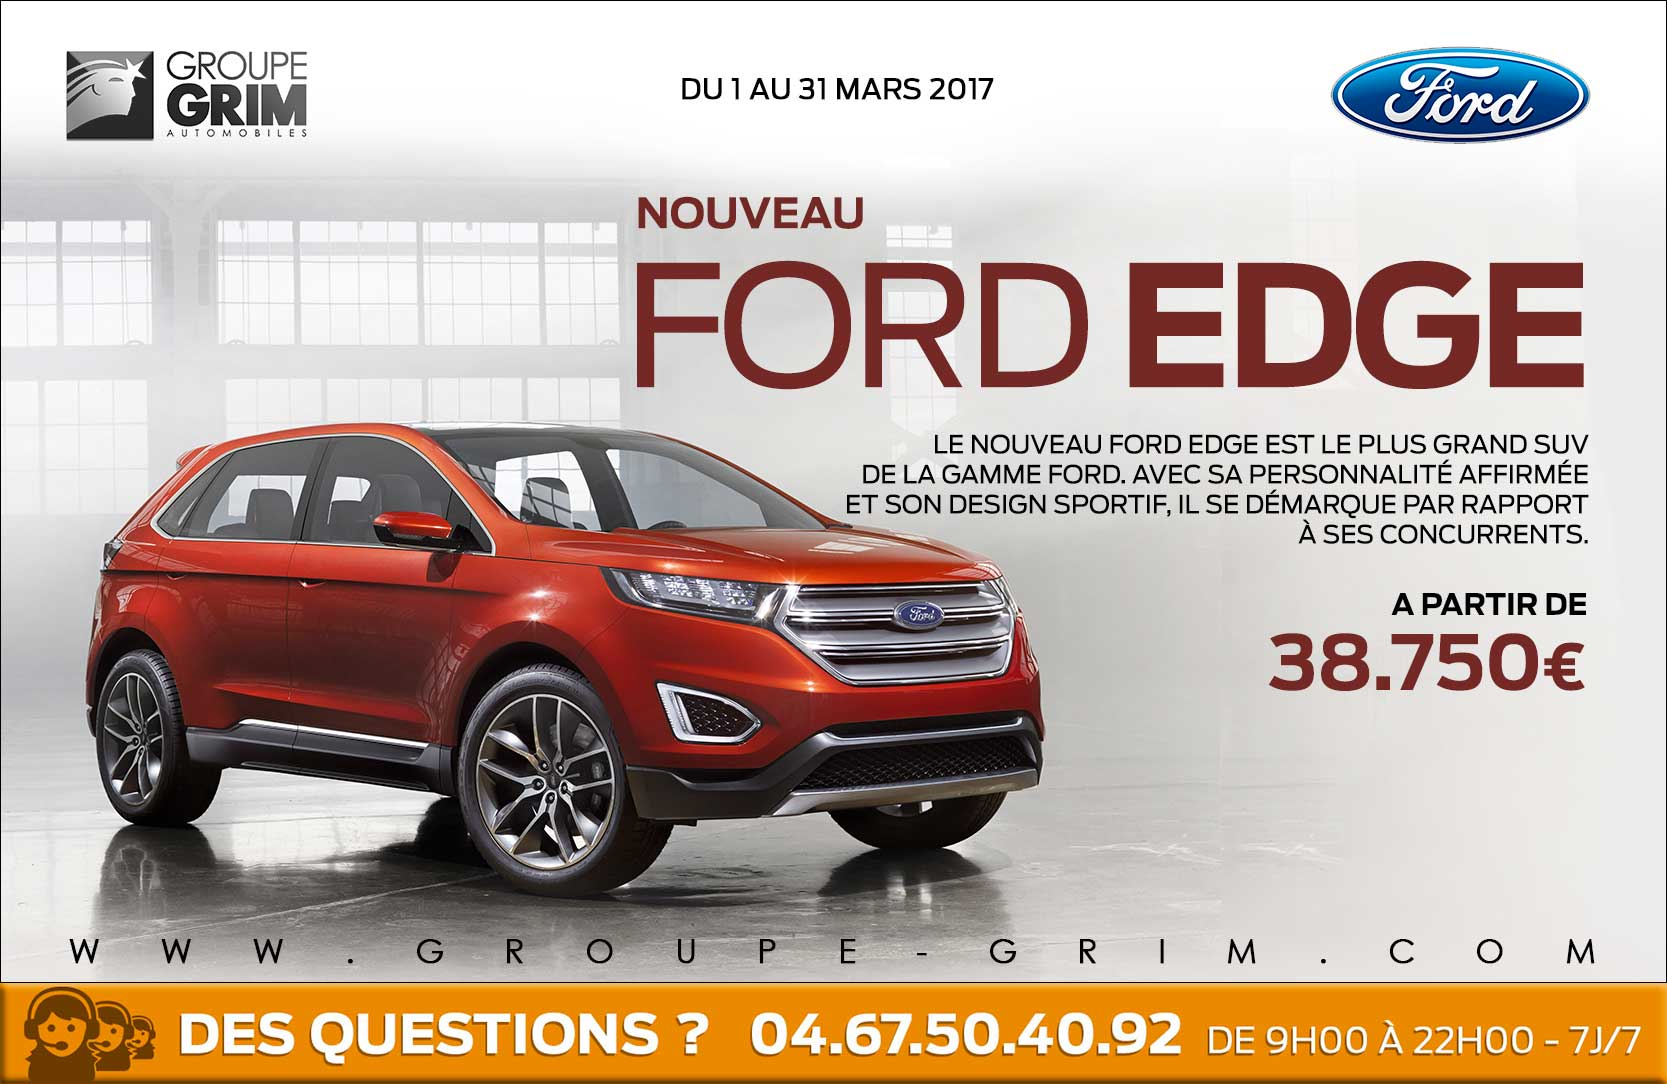 Nouveau ford edge partir de ford grim auto for Garage ford saval valence